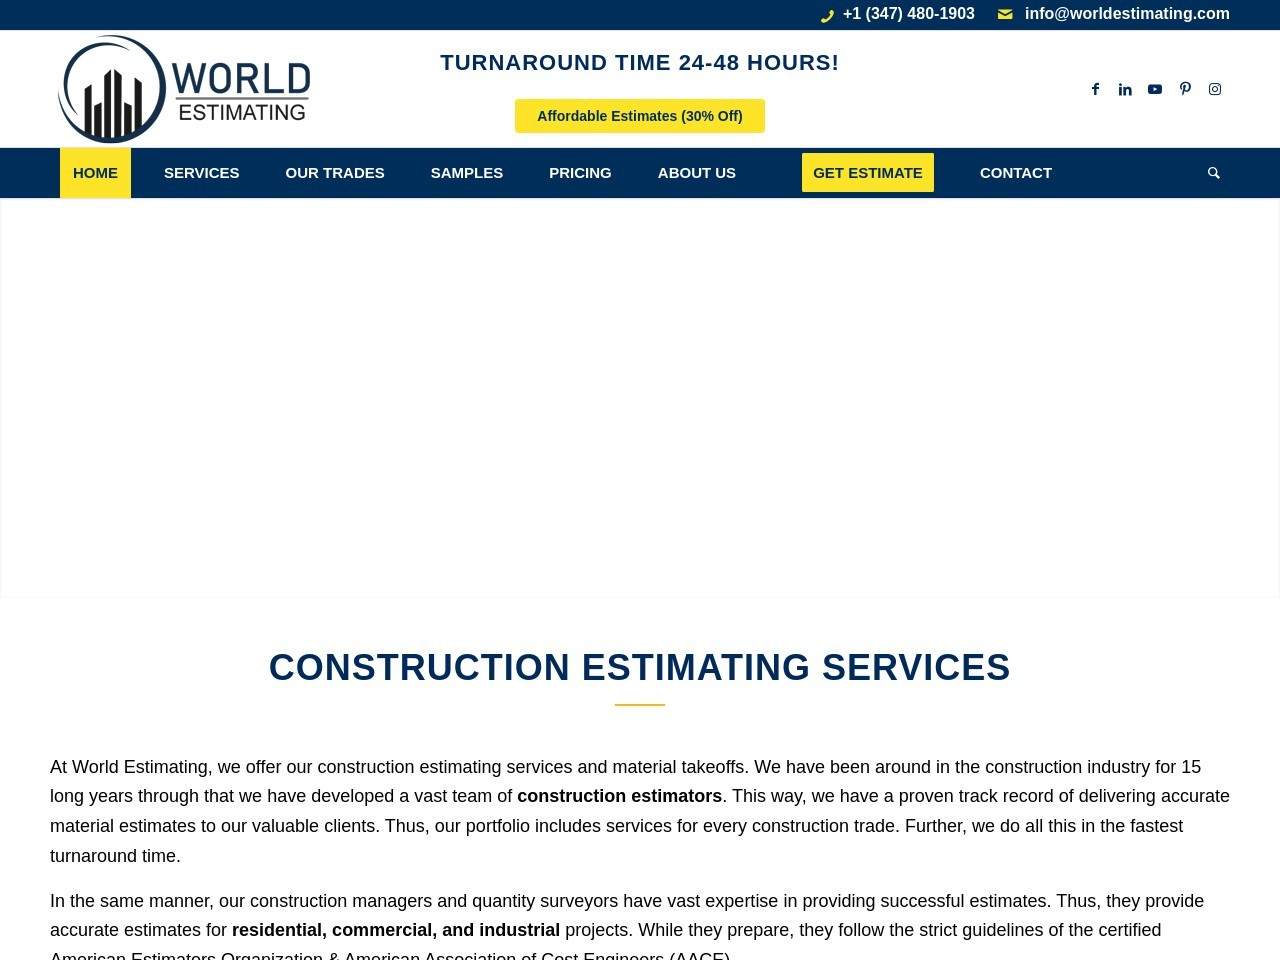 Ultimate Guide to Construction Estimating Services for Bidding and Procurement in 2020